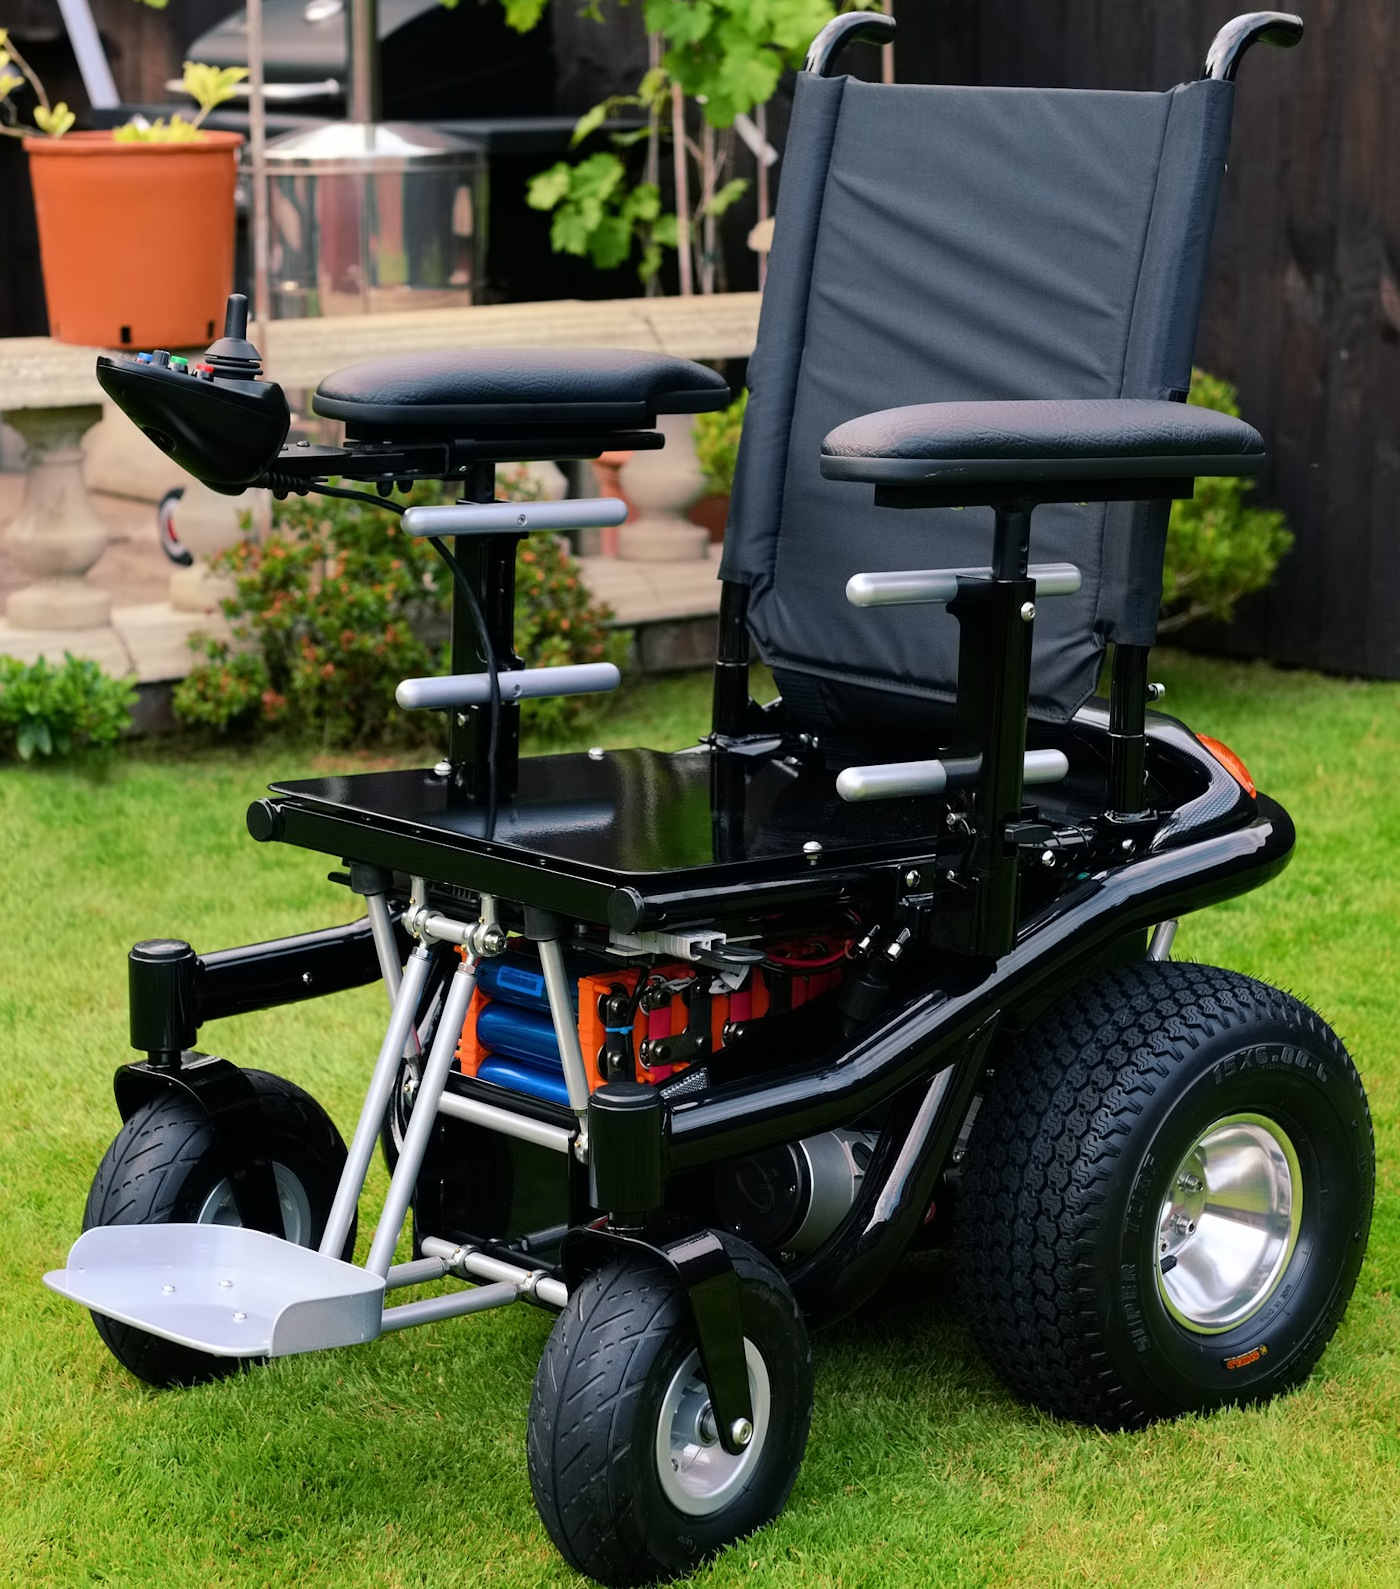 Electric Wheel Chairs Bm3 Powerchair The 16mph Fast Long Range Lithium